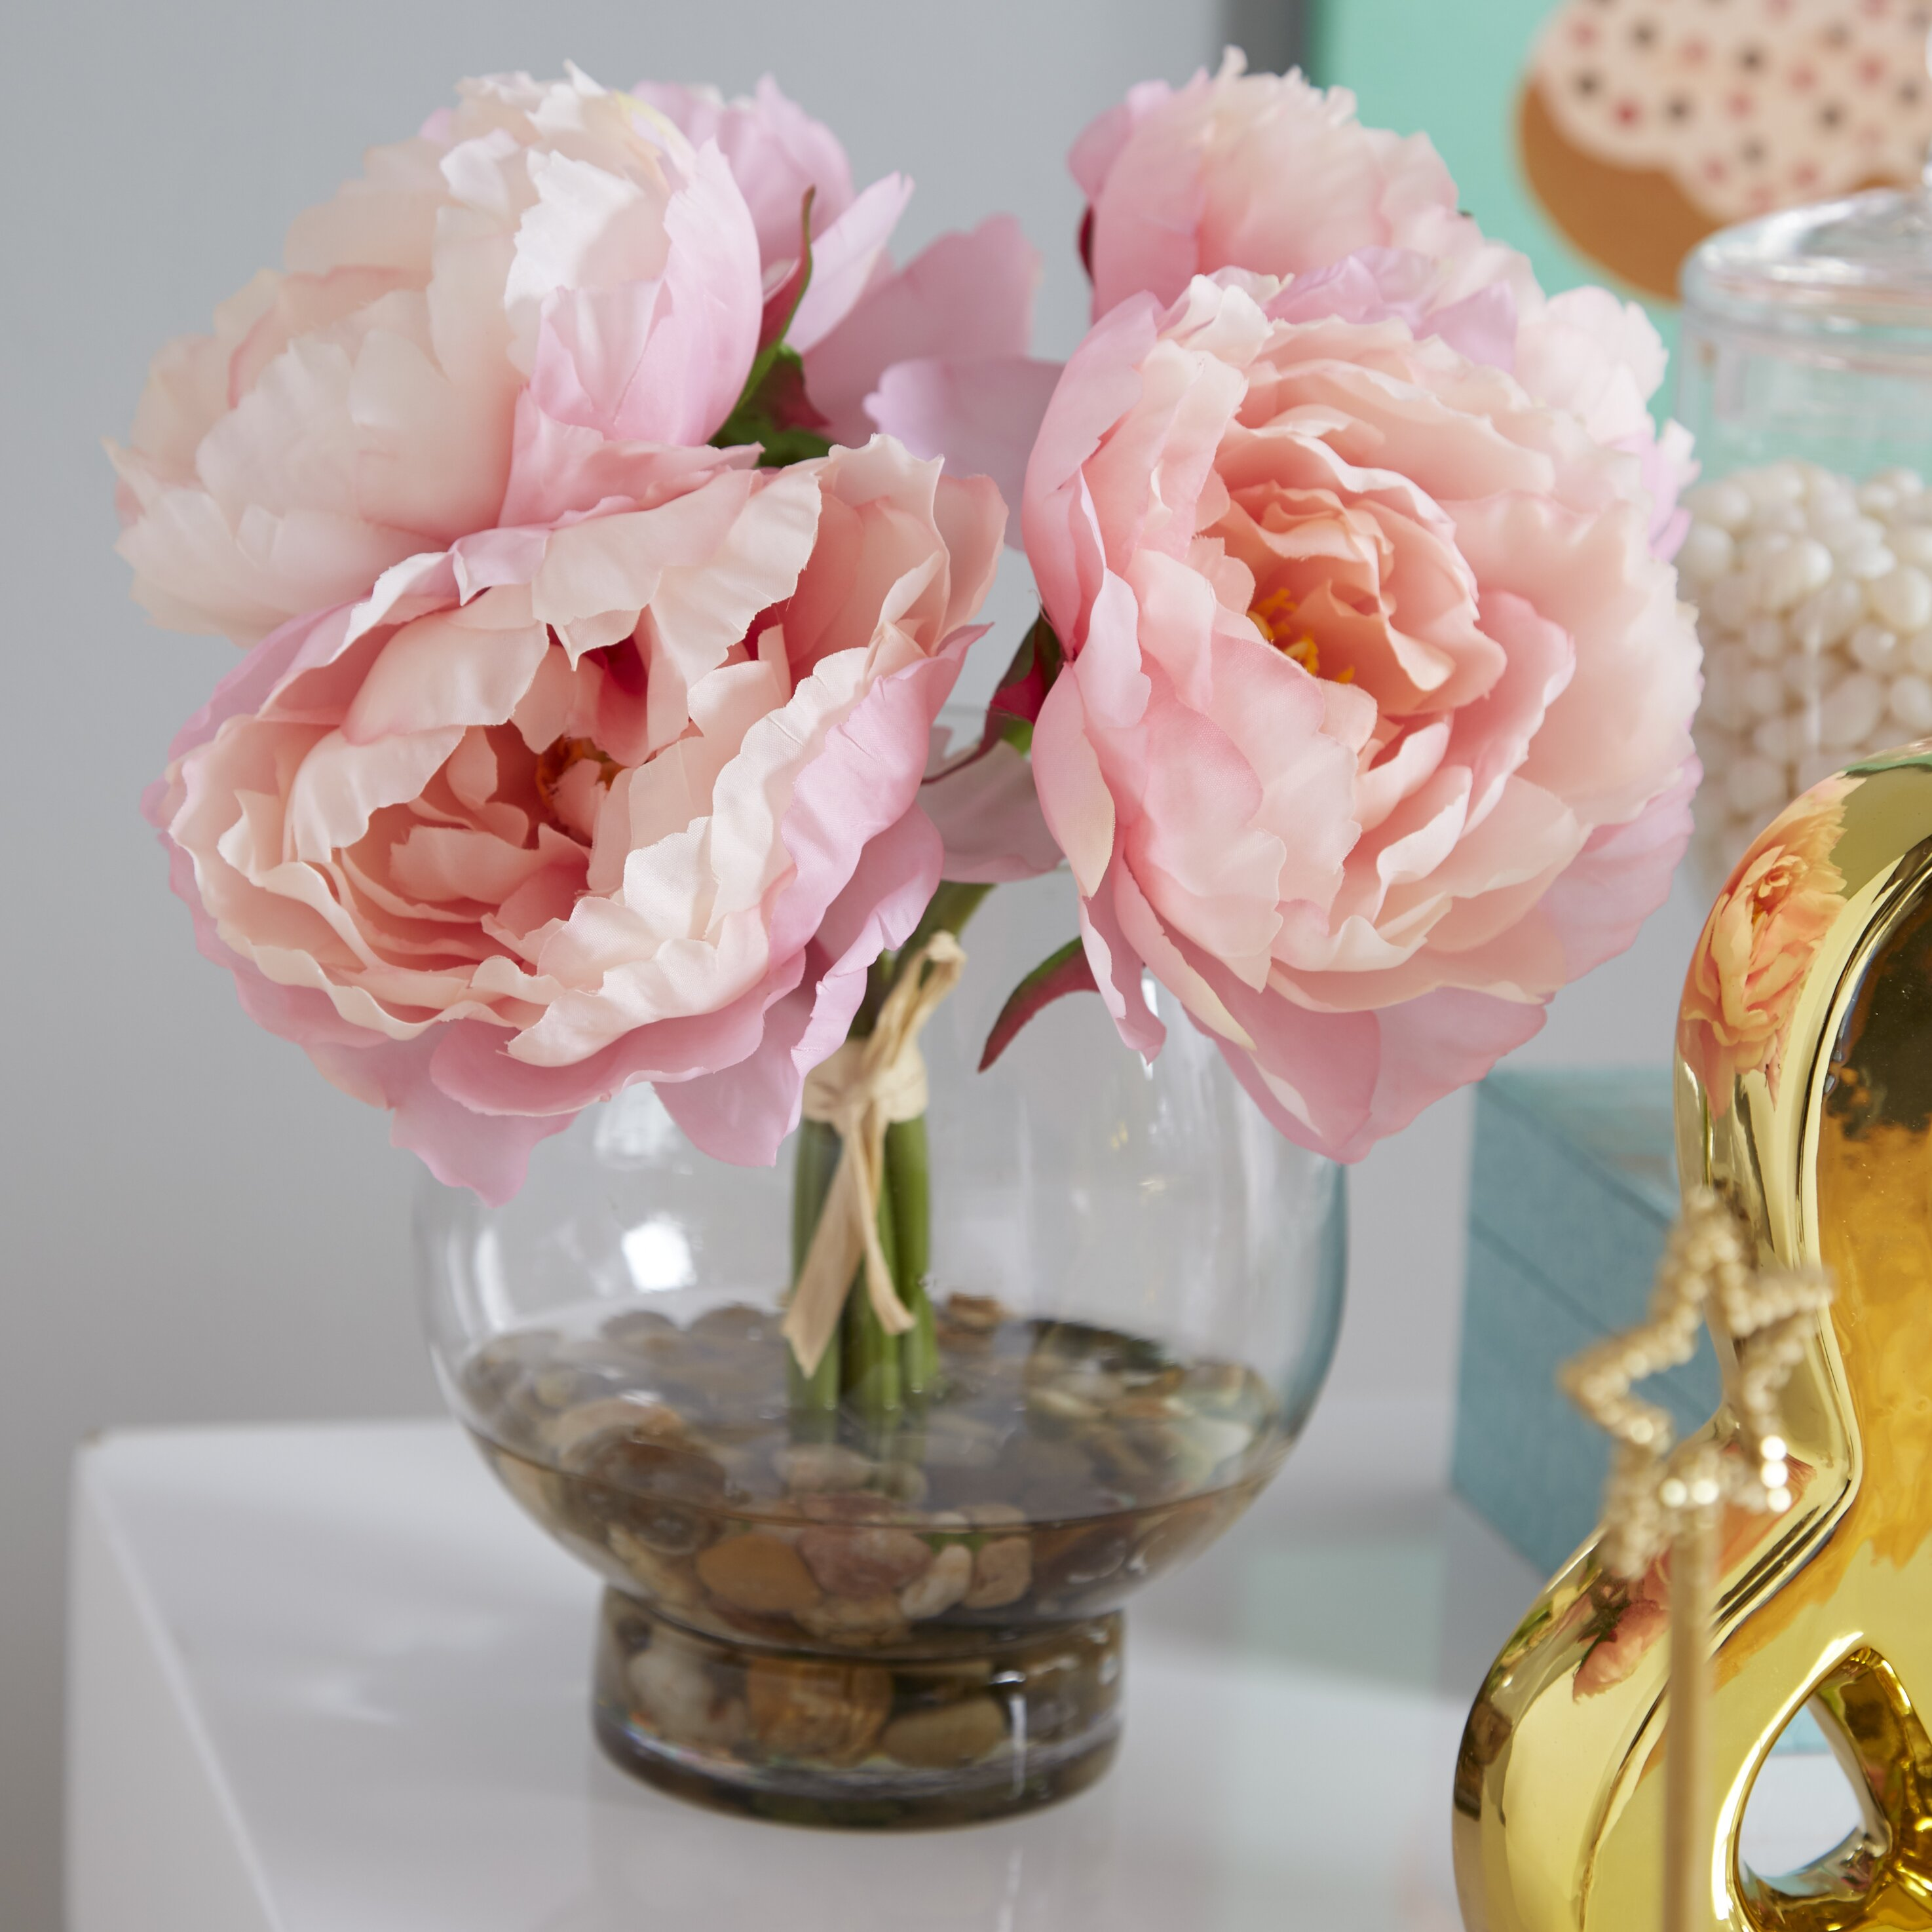 Lcgflorals Peonies In A Glass Vase With River Rocks And